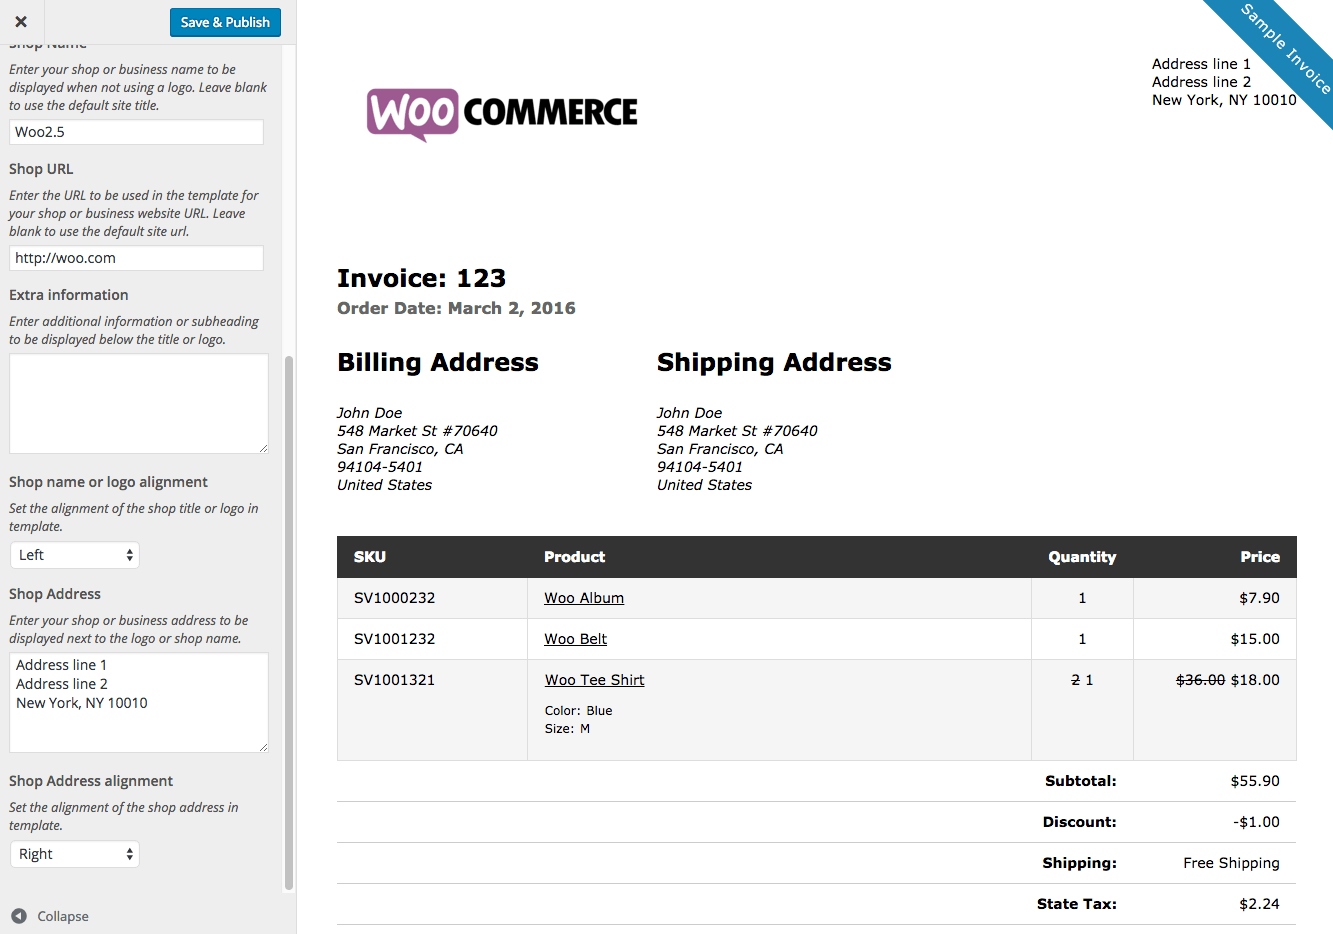 Carsforlessus  Remarkable Woocommerce Print Invoices Amp Packing Lists  Woocommerce Docs With Likable Woocommerce Print Invoices  Packing Lists Customizer With Charming Non Refundable Deposit Receipt Also Monthly Rent Receipt In Addition Example Of Cash Receipts Journal And Received Payment Receipt Format As Well As Part Payment Receipt Format Additionally Cash Book Receipts From Docswoocommercecom With Carsforlessus  Likable Woocommerce Print Invoices Amp Packing Lists  Woocommerce Docs With Charming Woocommerce Print Invoices  Packing Lists Customizer And Remarkable Non Refundable Deposit Receipt Also Monthly Rent Receipt In Addition Example Of Cash Receipts Journal From Docswoocommercecom